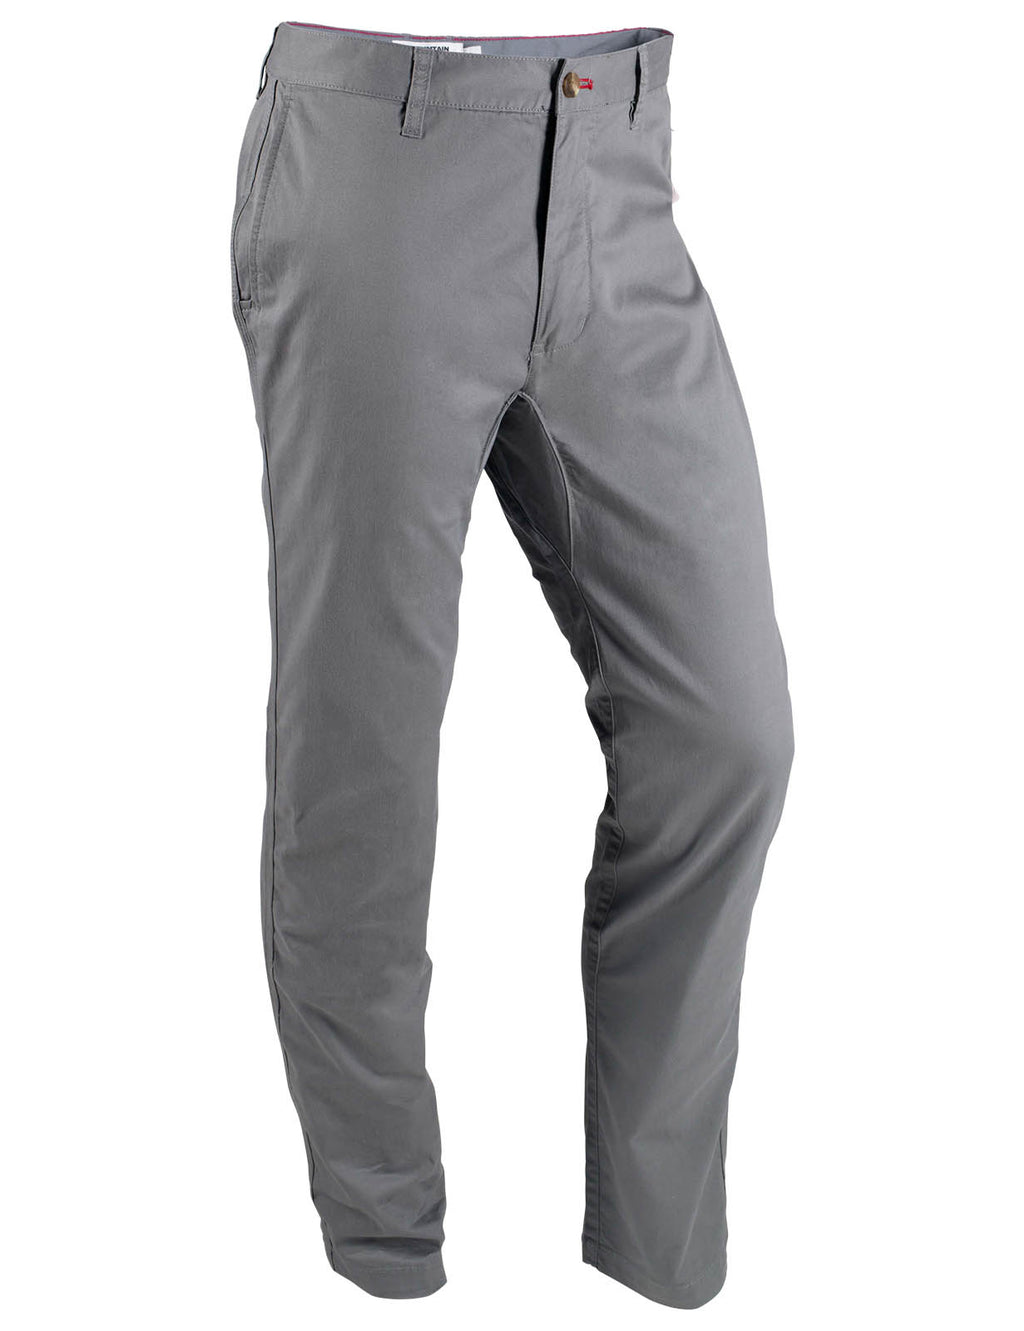 Men's Jackson Chino Pants | Mountain Khakis. Men's outdoor lifestyle pant ideal for hiking, camping, climbing, field, trail, stream. Cotton spandex twill. Slim tailored fit with mid-rise and tailored leg. Triple-stitched out-seams for maximum durability.